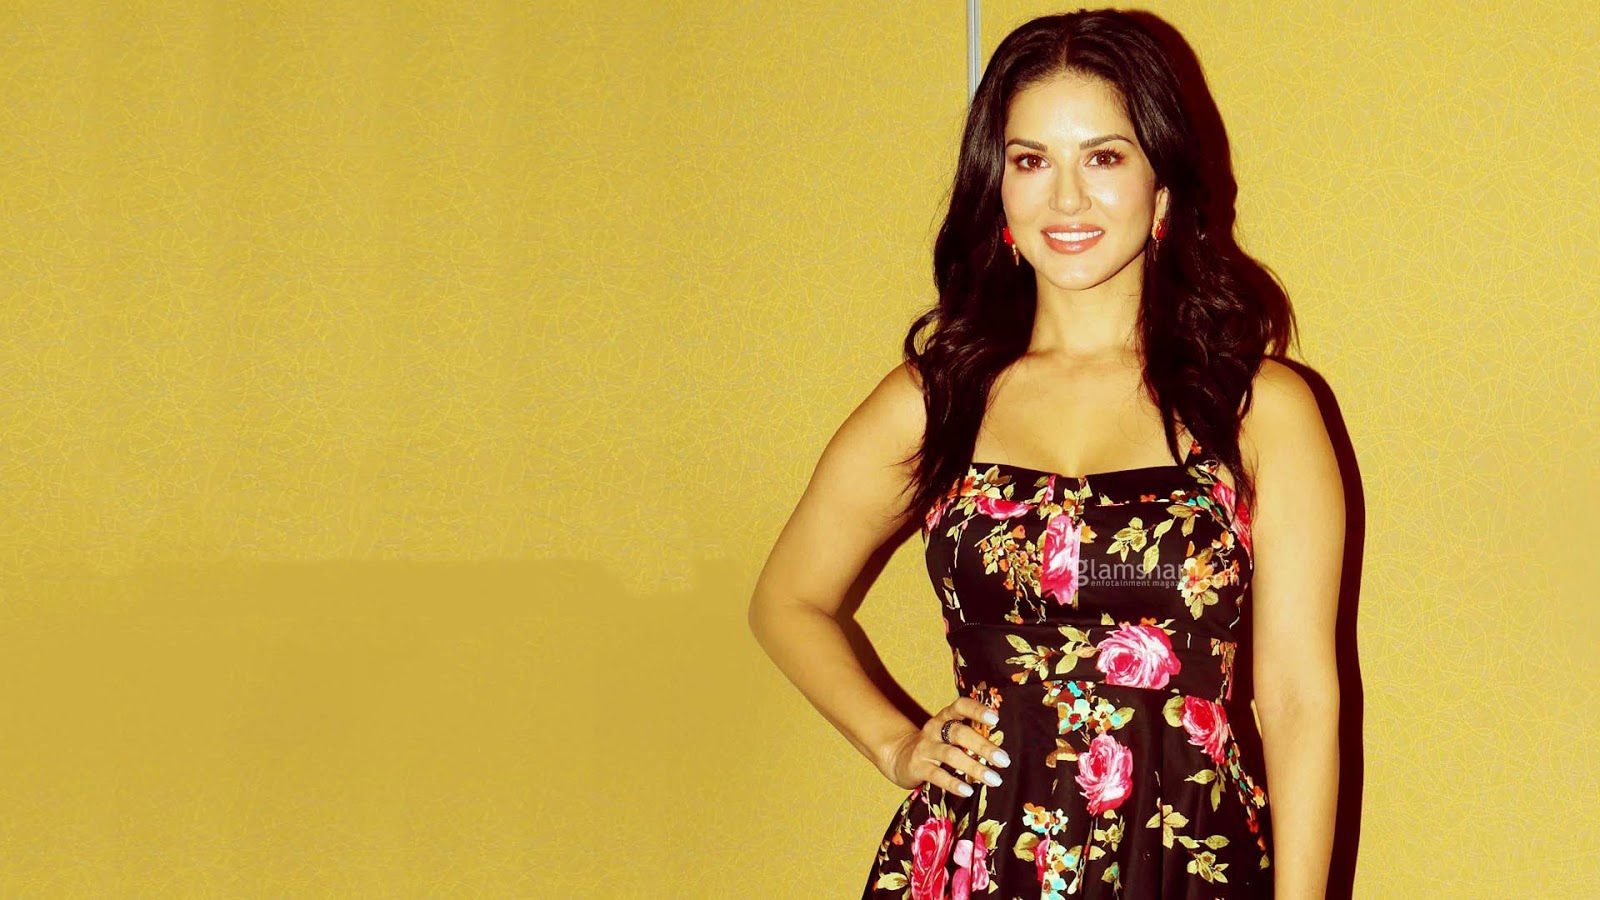 Sunny Leone Wallpapers Hd Download Free 1080P